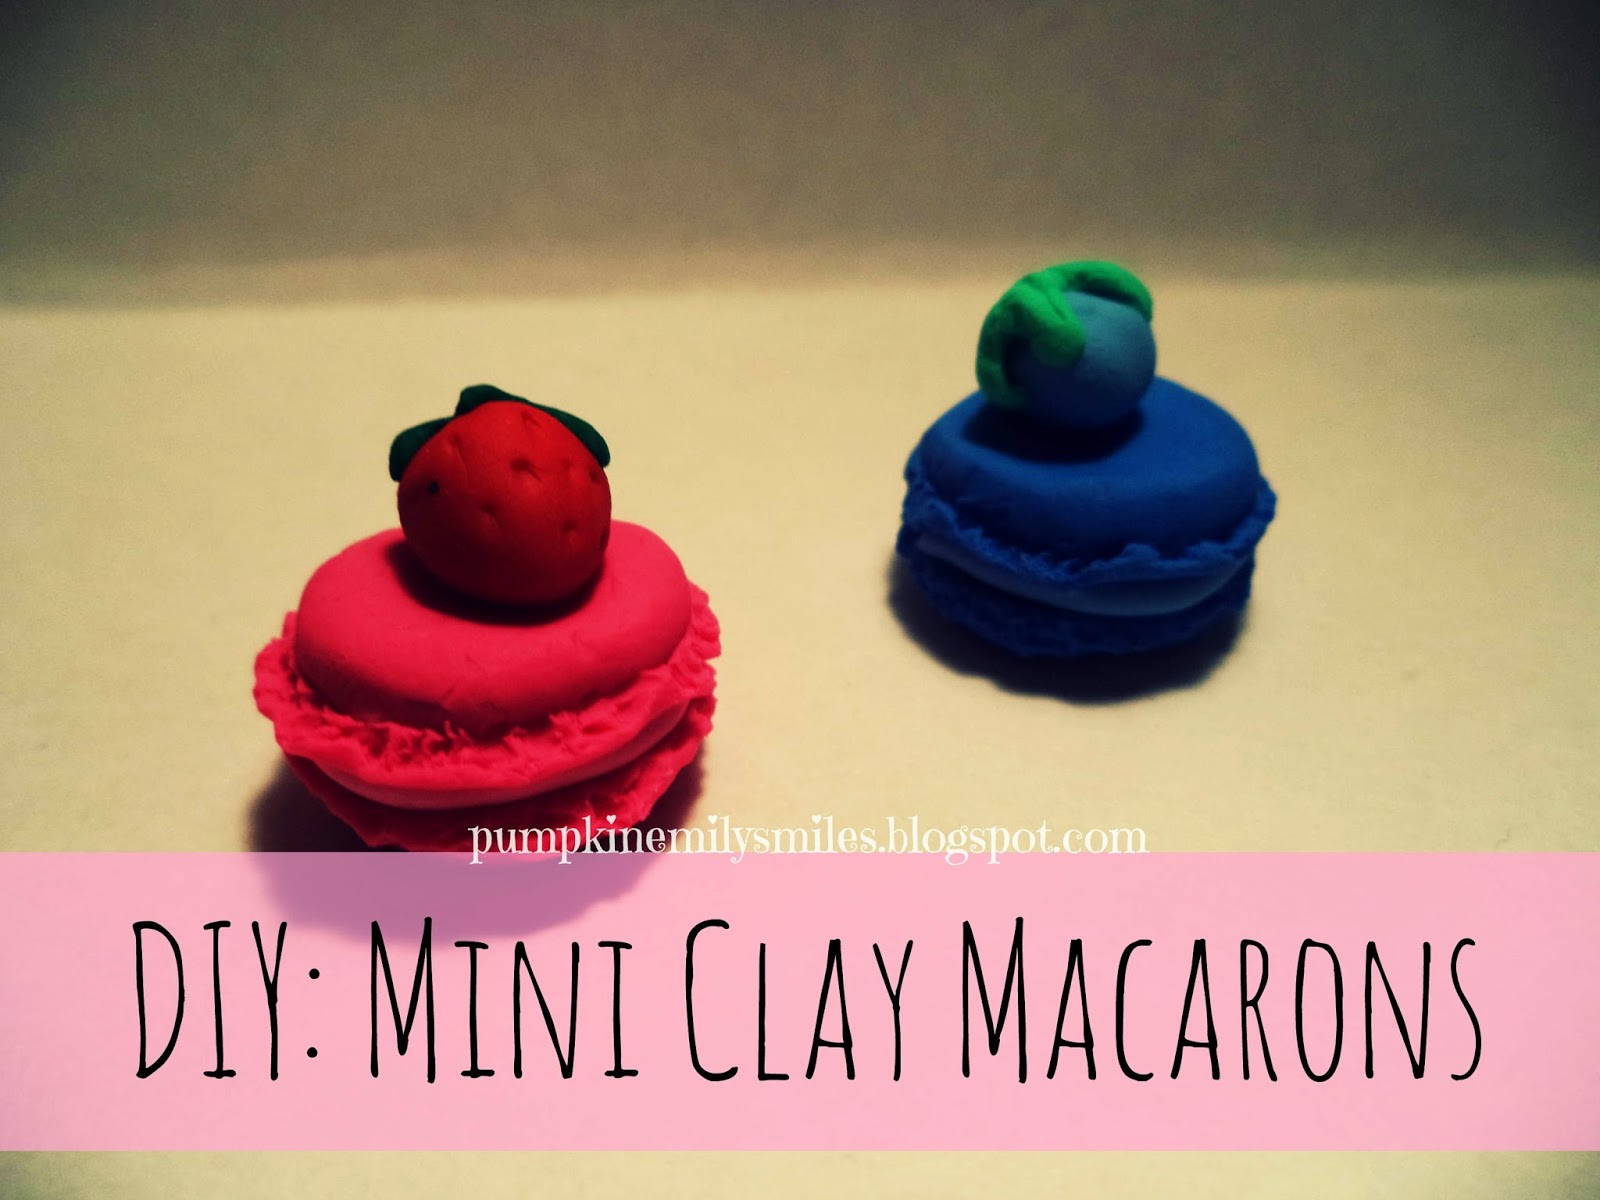 DIY: Mini Clay Macarons